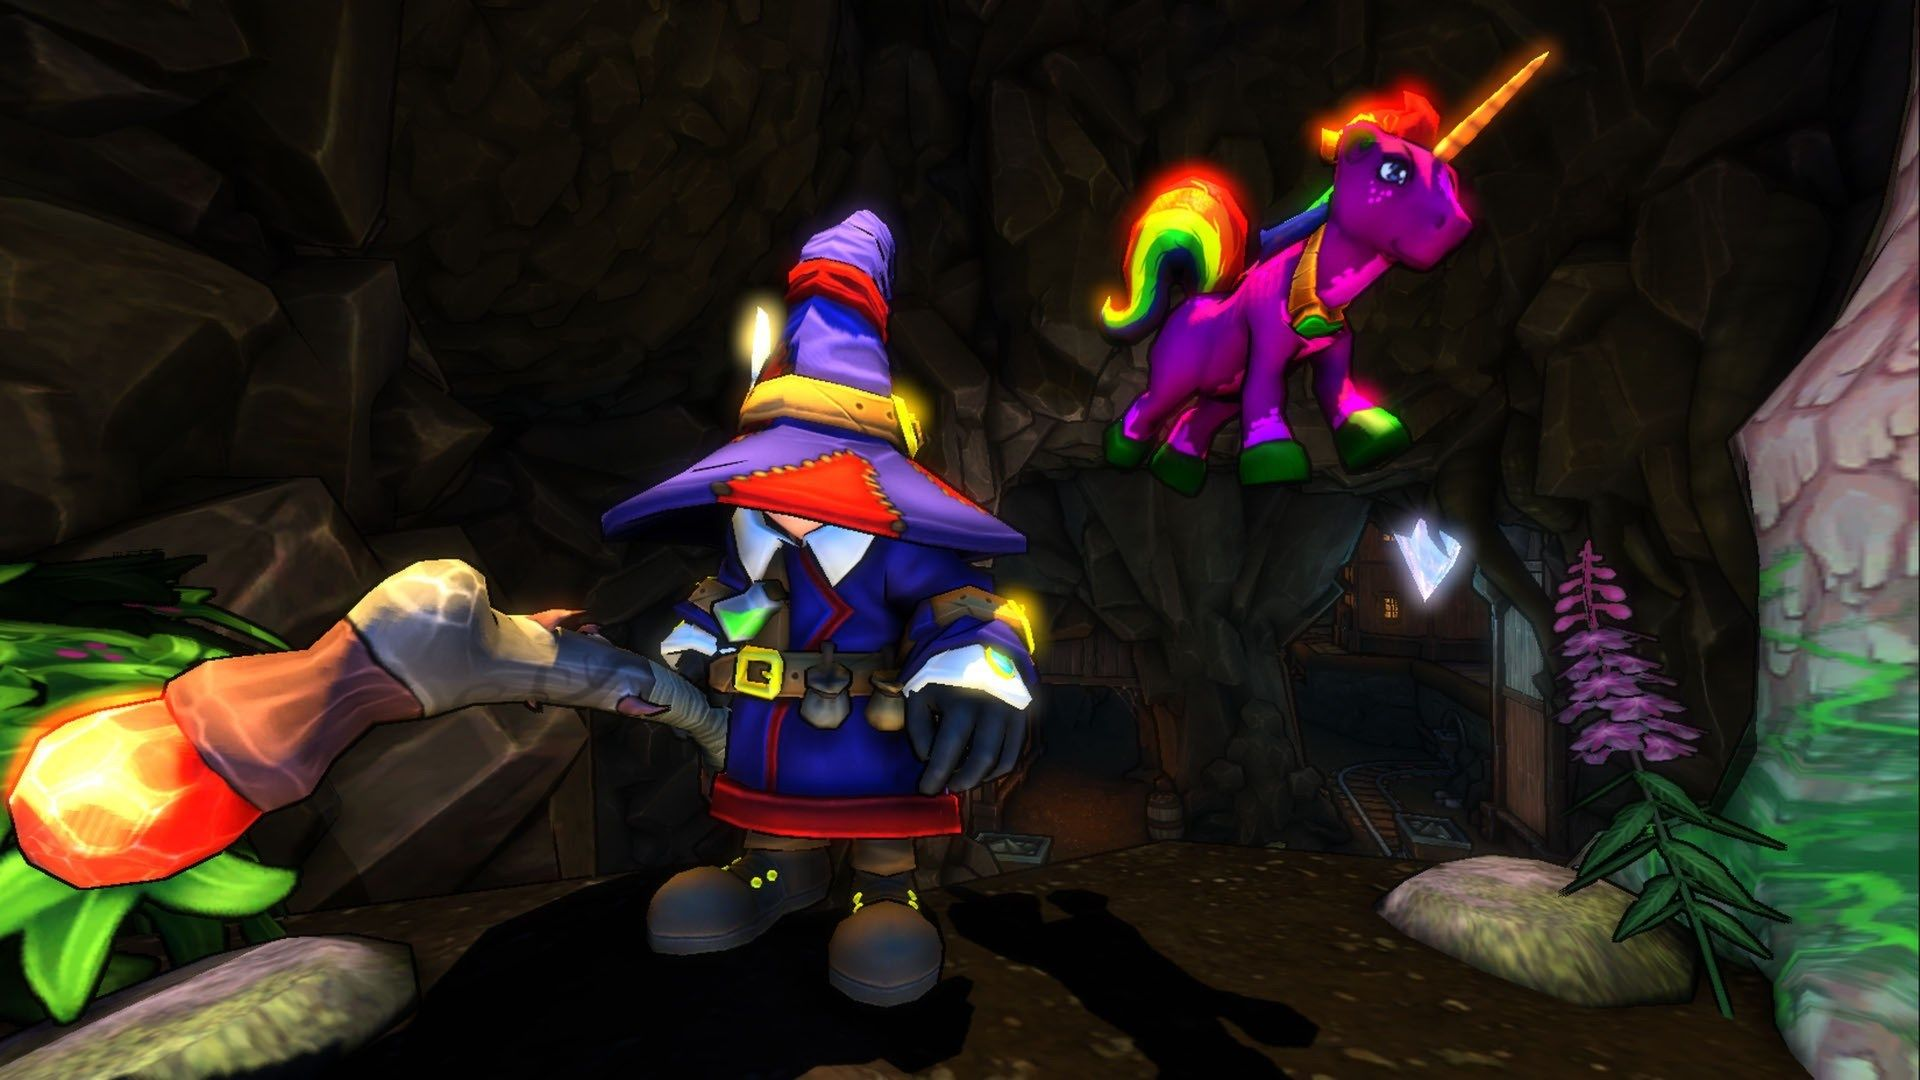 wallpaper images dungeon defenders - dungeon defenders category